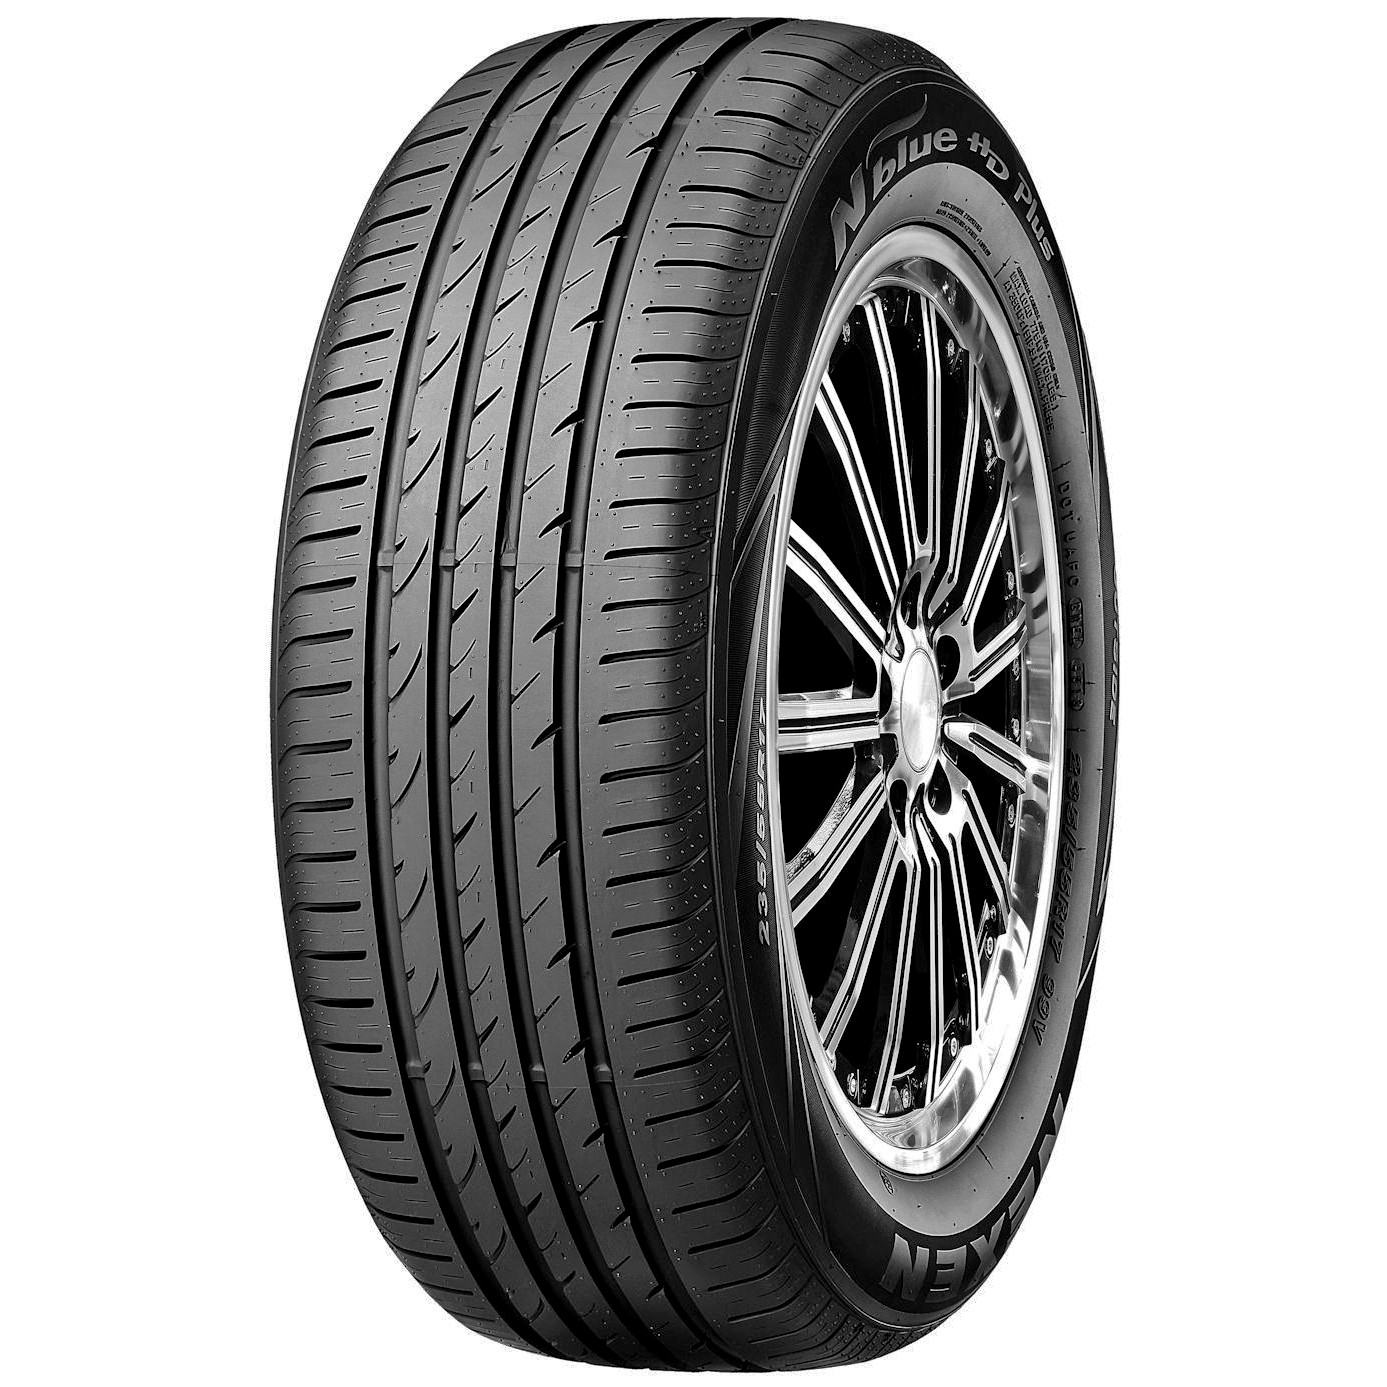 Летняя шина Nexen N'blue HD Plus 205/65 R16 95H